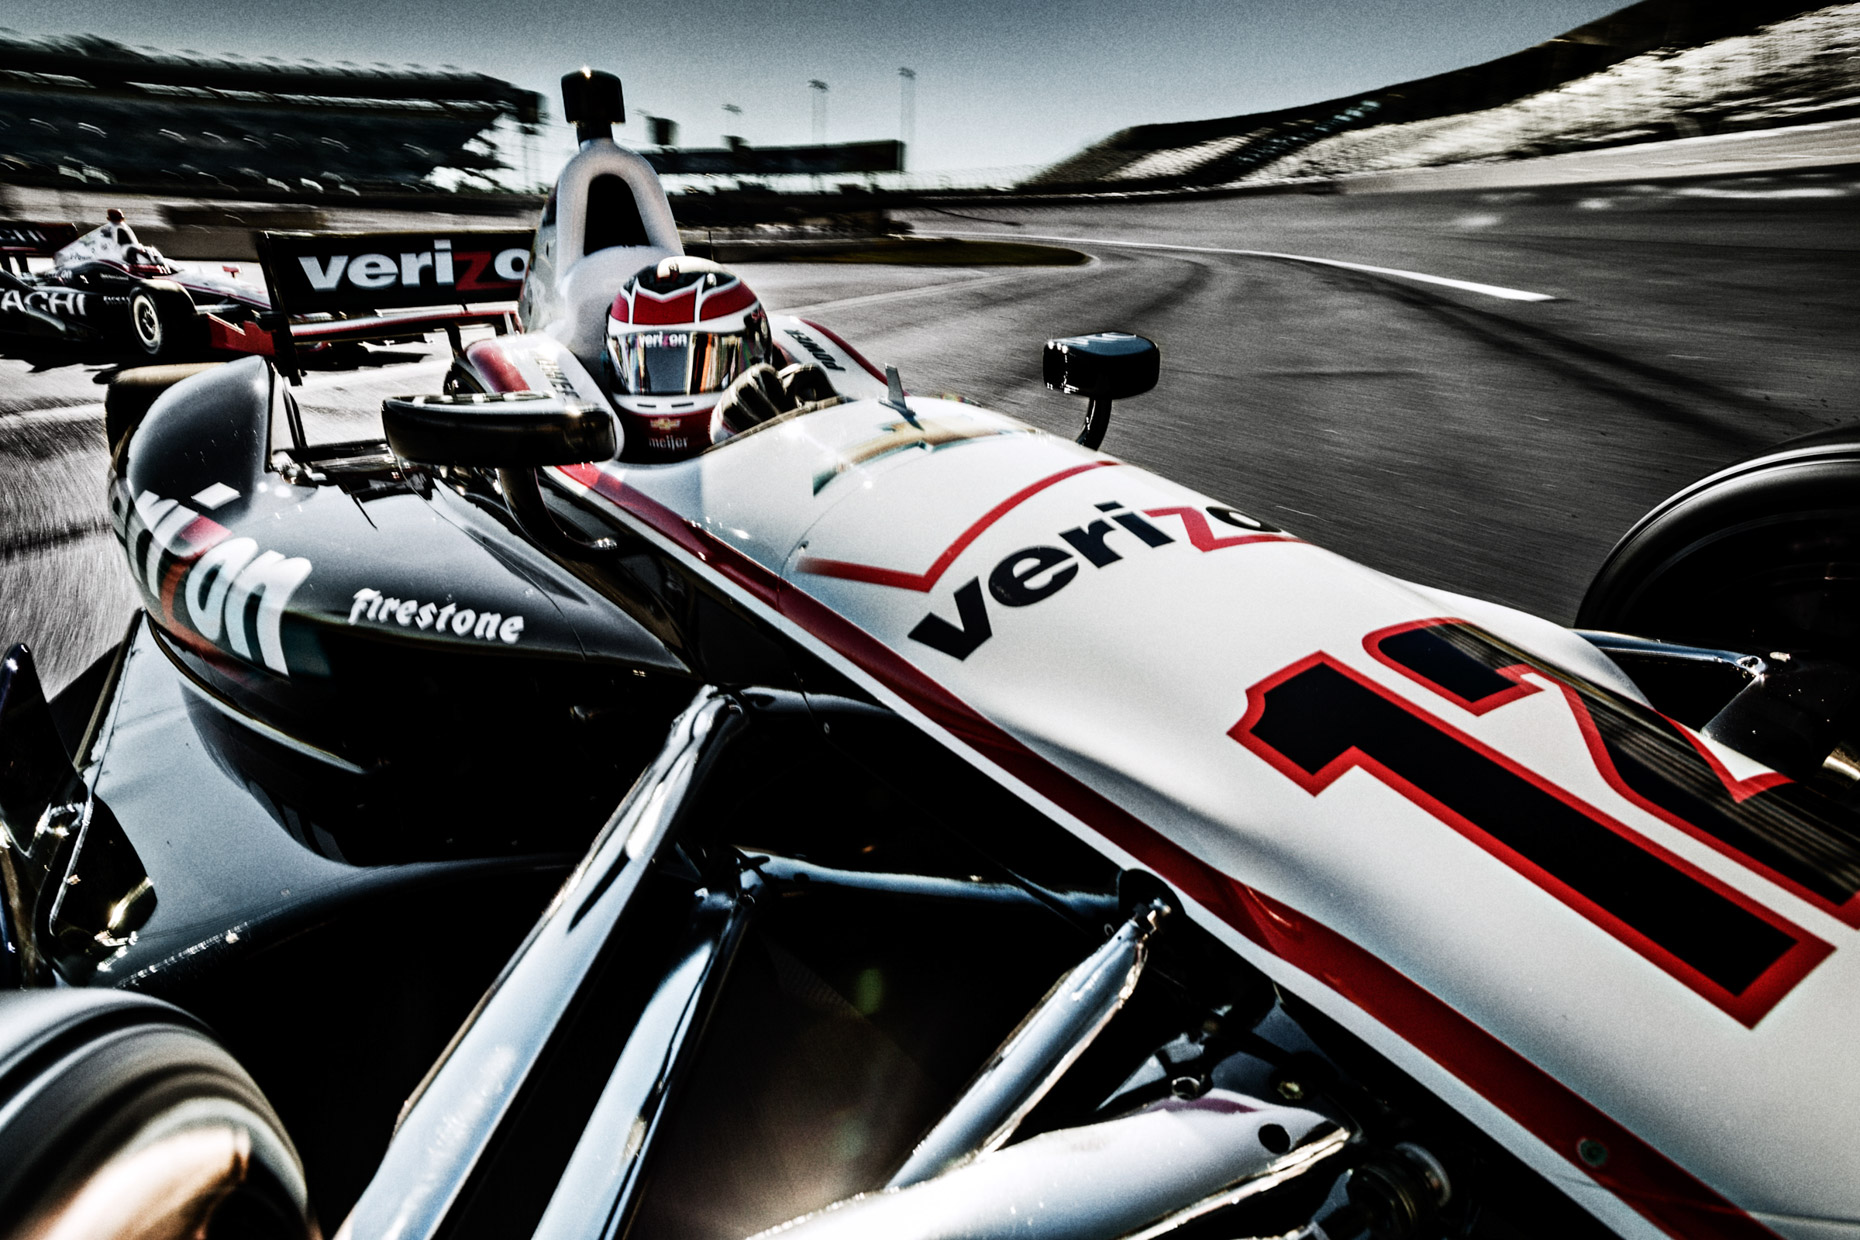 Indycar racecar driver Will Power